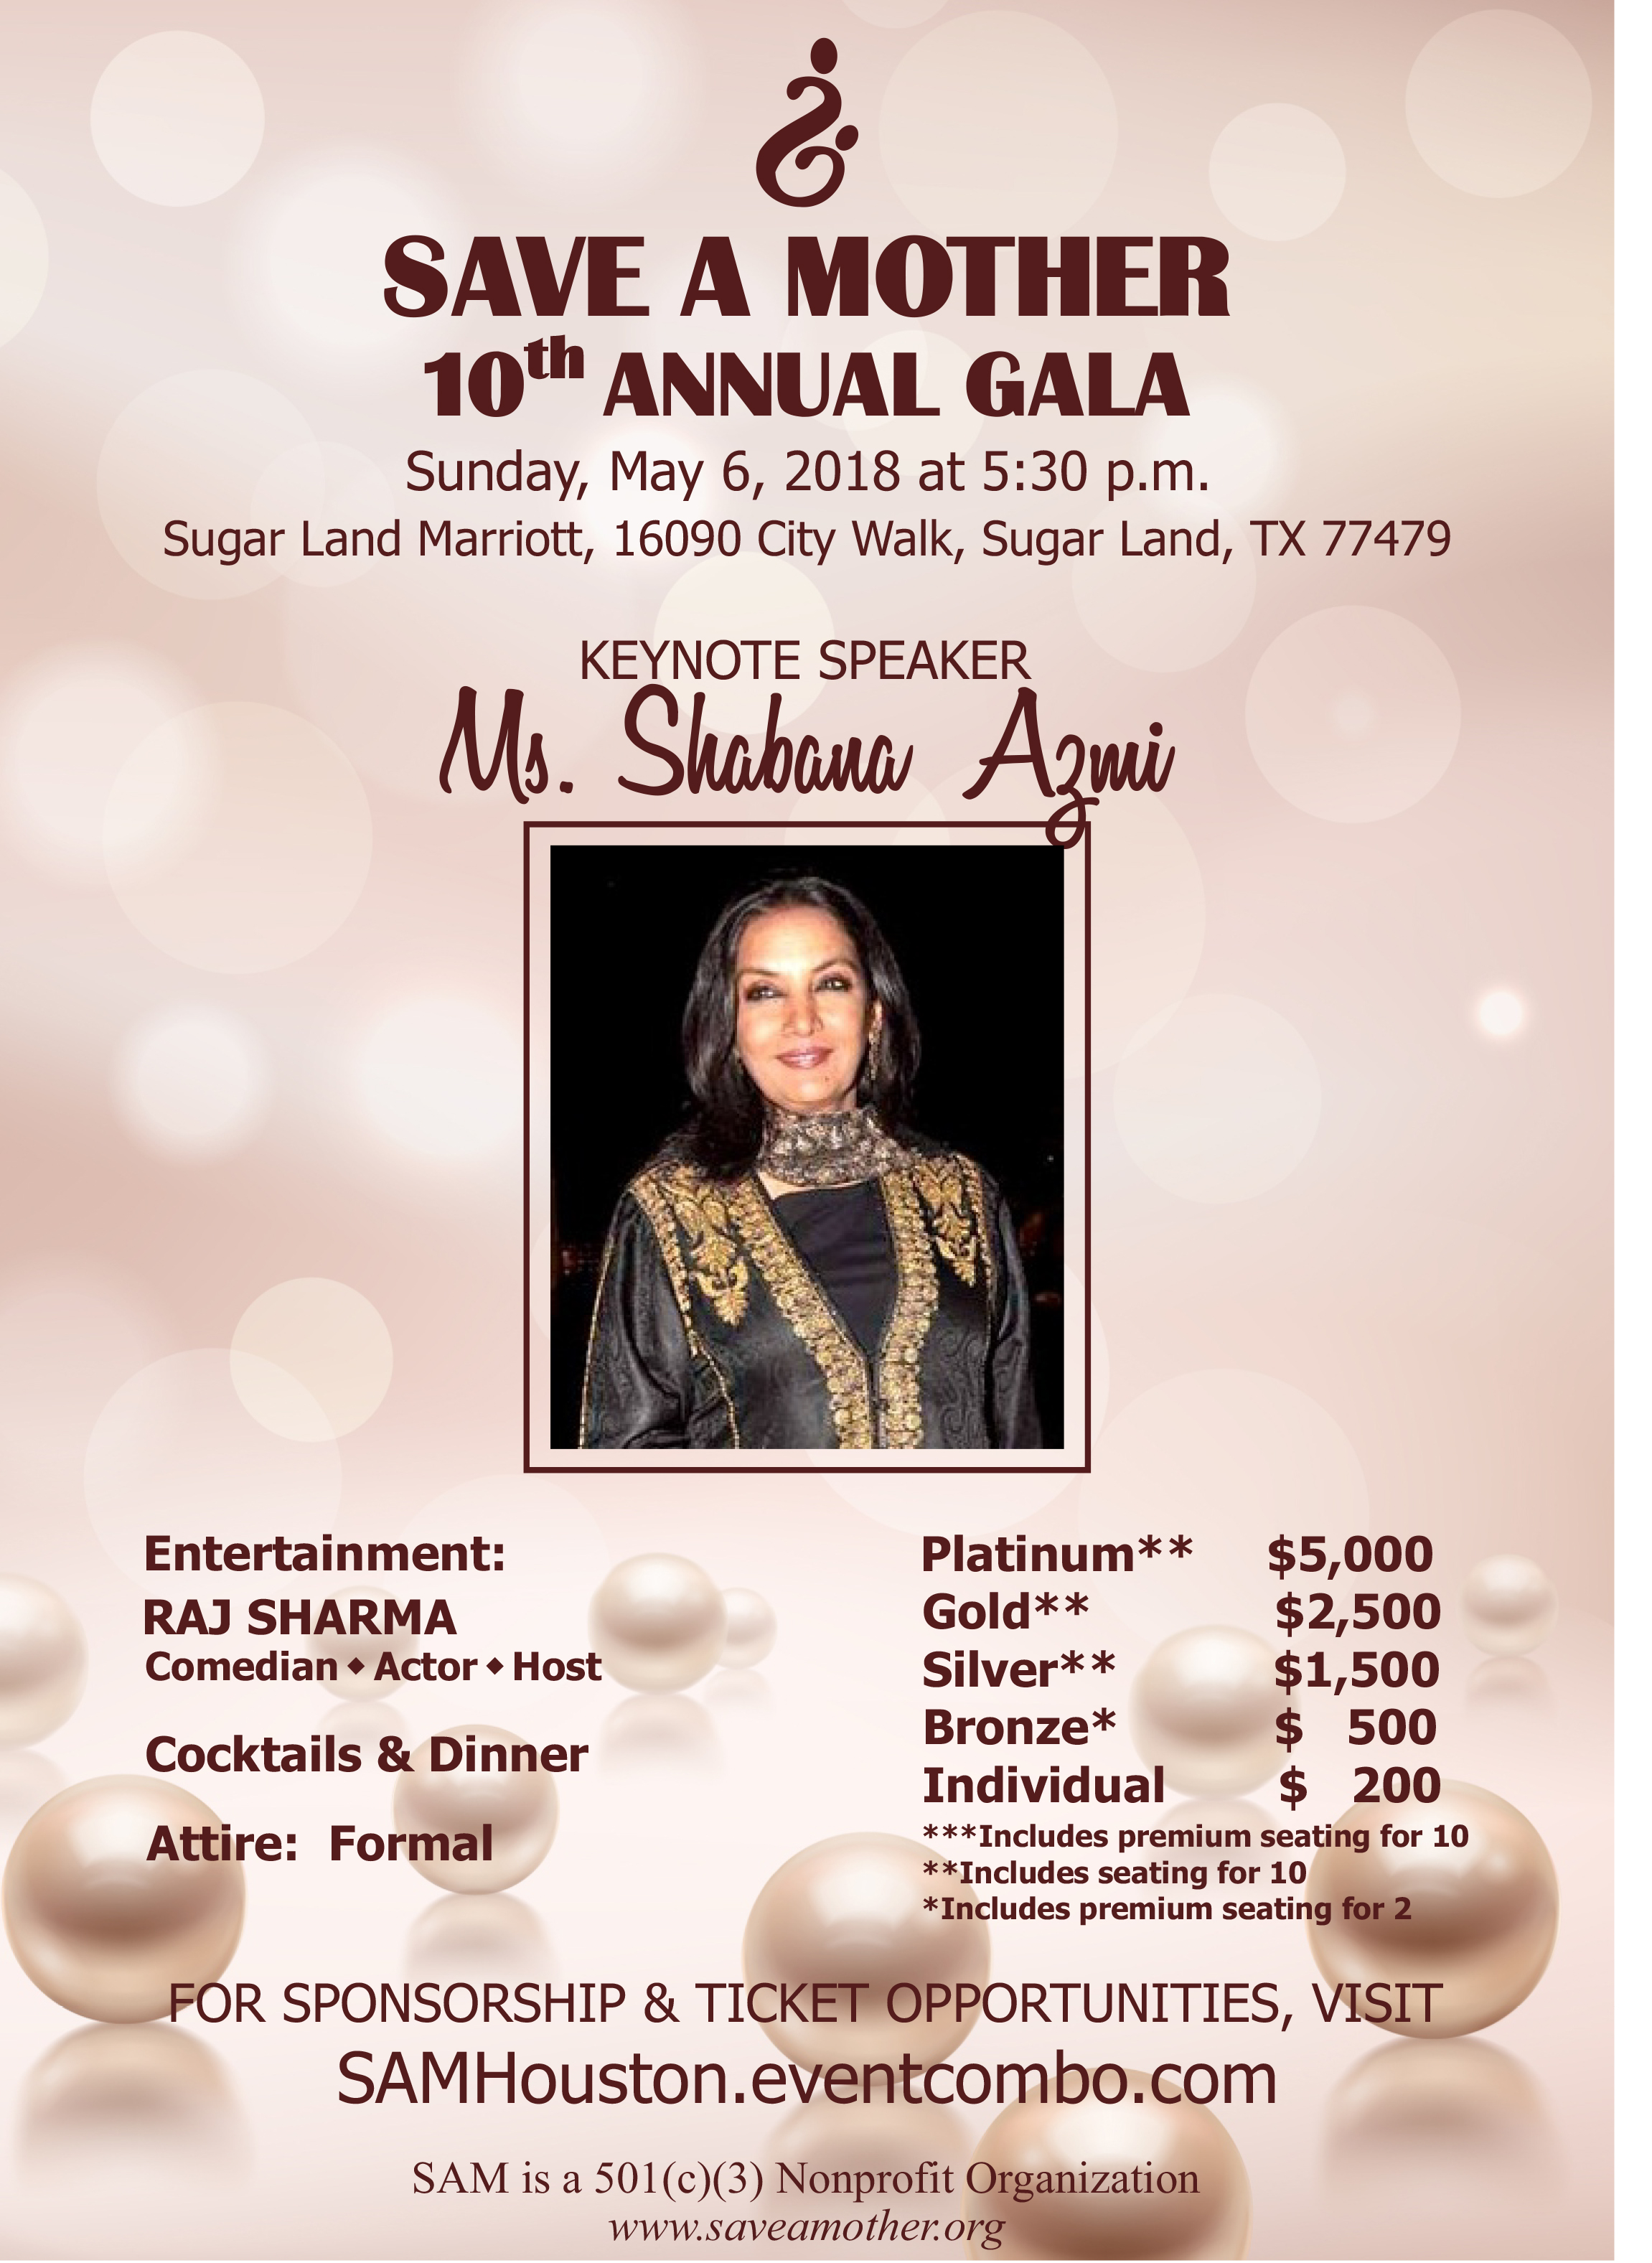 Save A Mother 10th Annual Gala in Houston